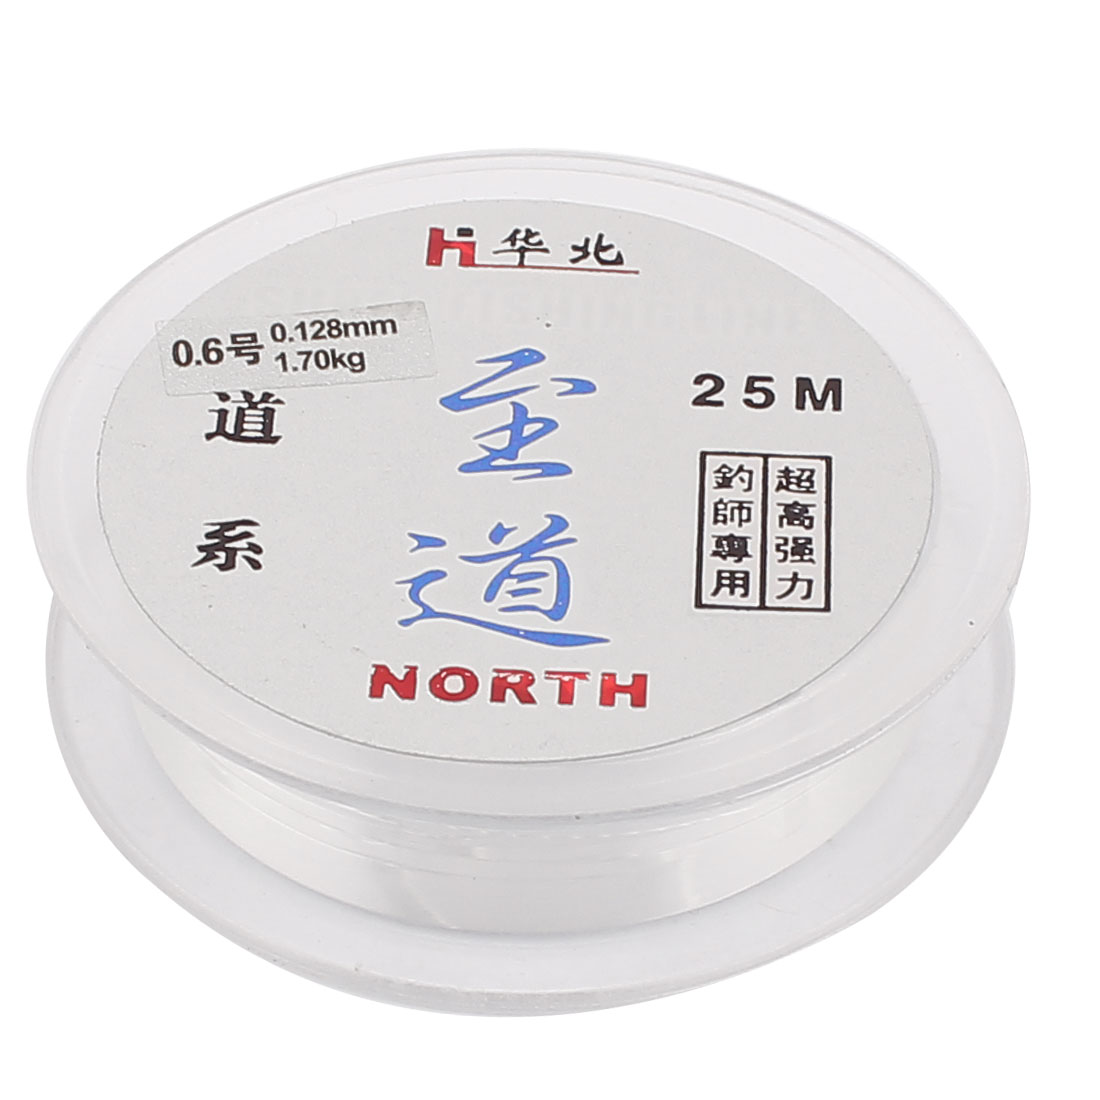 0.128mm Dia Clear Nylon 1.7Kg 3.7Lb Thread Fishing Lure Line String Spool 25M 82Ft Length